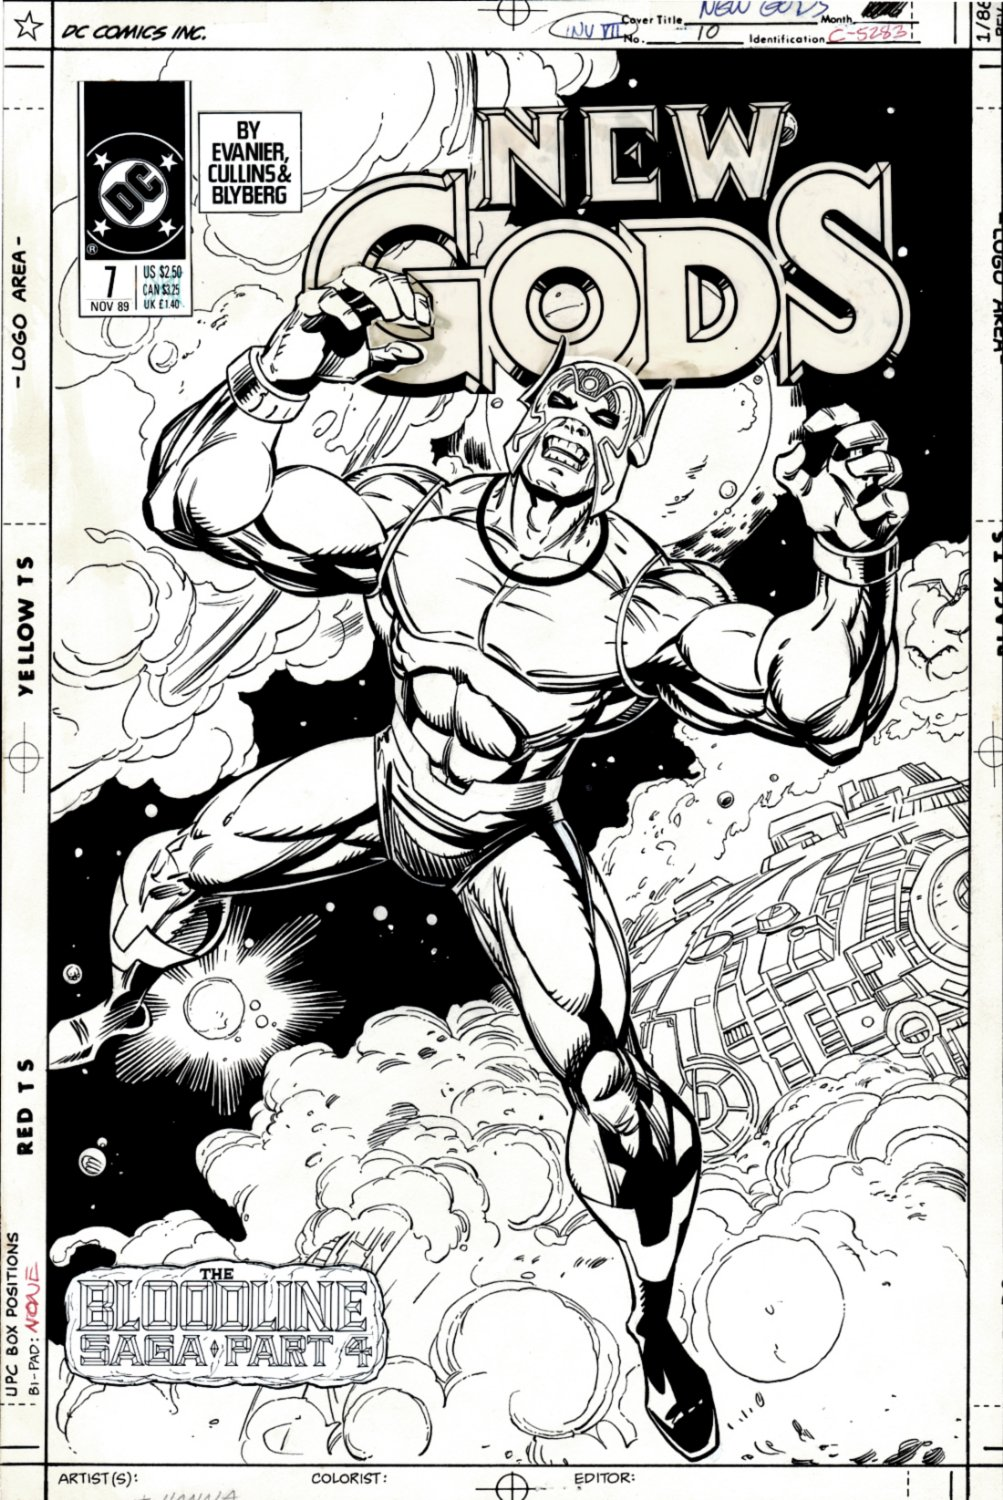 New Gods #10 Cover (SOLD LIVE ON 'DUELING DEALERS OF COMIC ART' EPISODE #38 PODCAST ON 9-29-2021(RE-WATCH THIS FUNNY ART SELLING SHOW HERE)